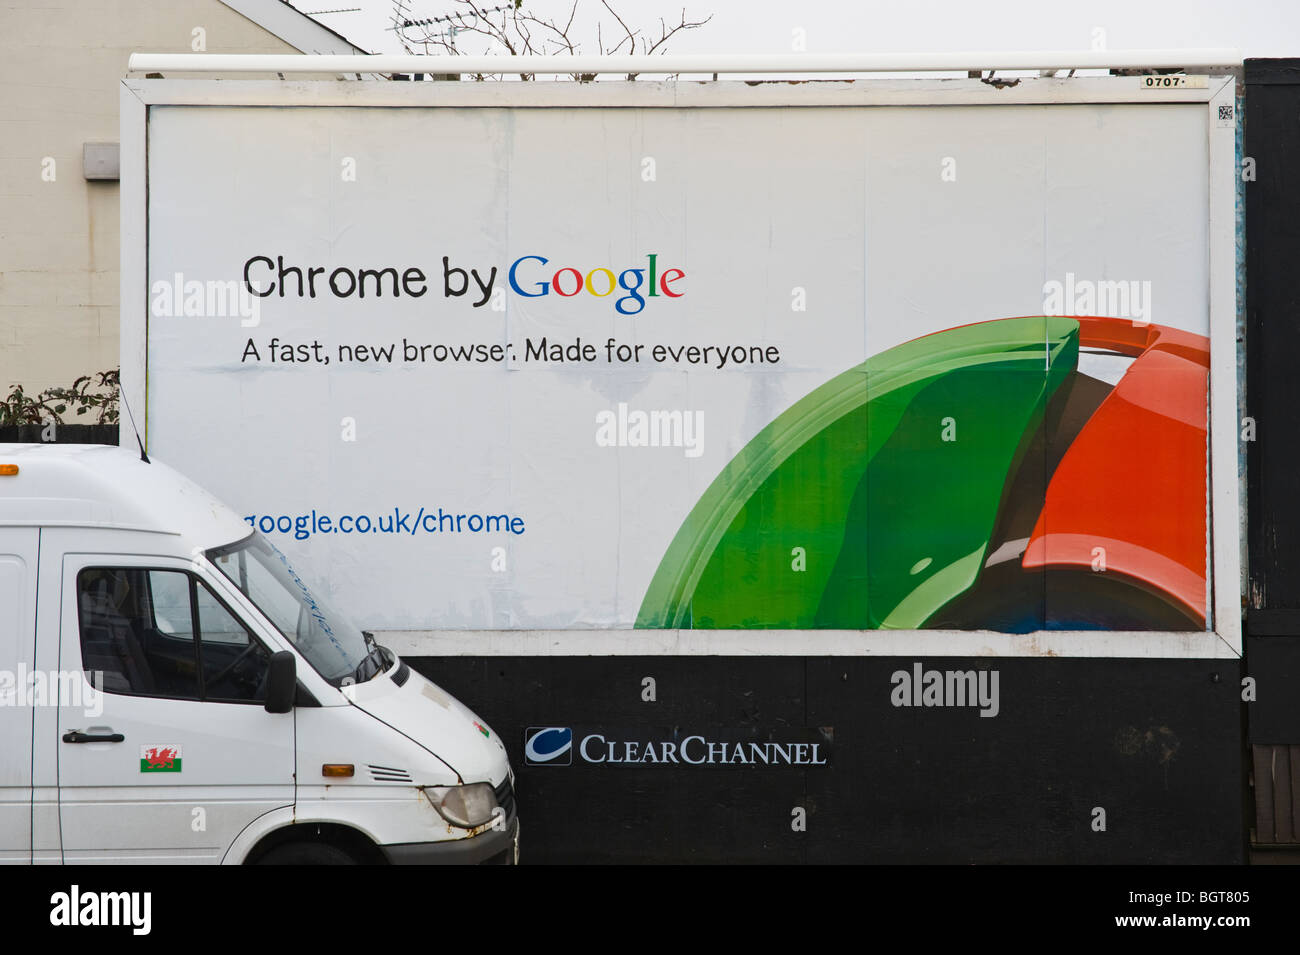 ClearChannel site with Google Chrome browser billboard in Newport South Wales UK - Stock Image